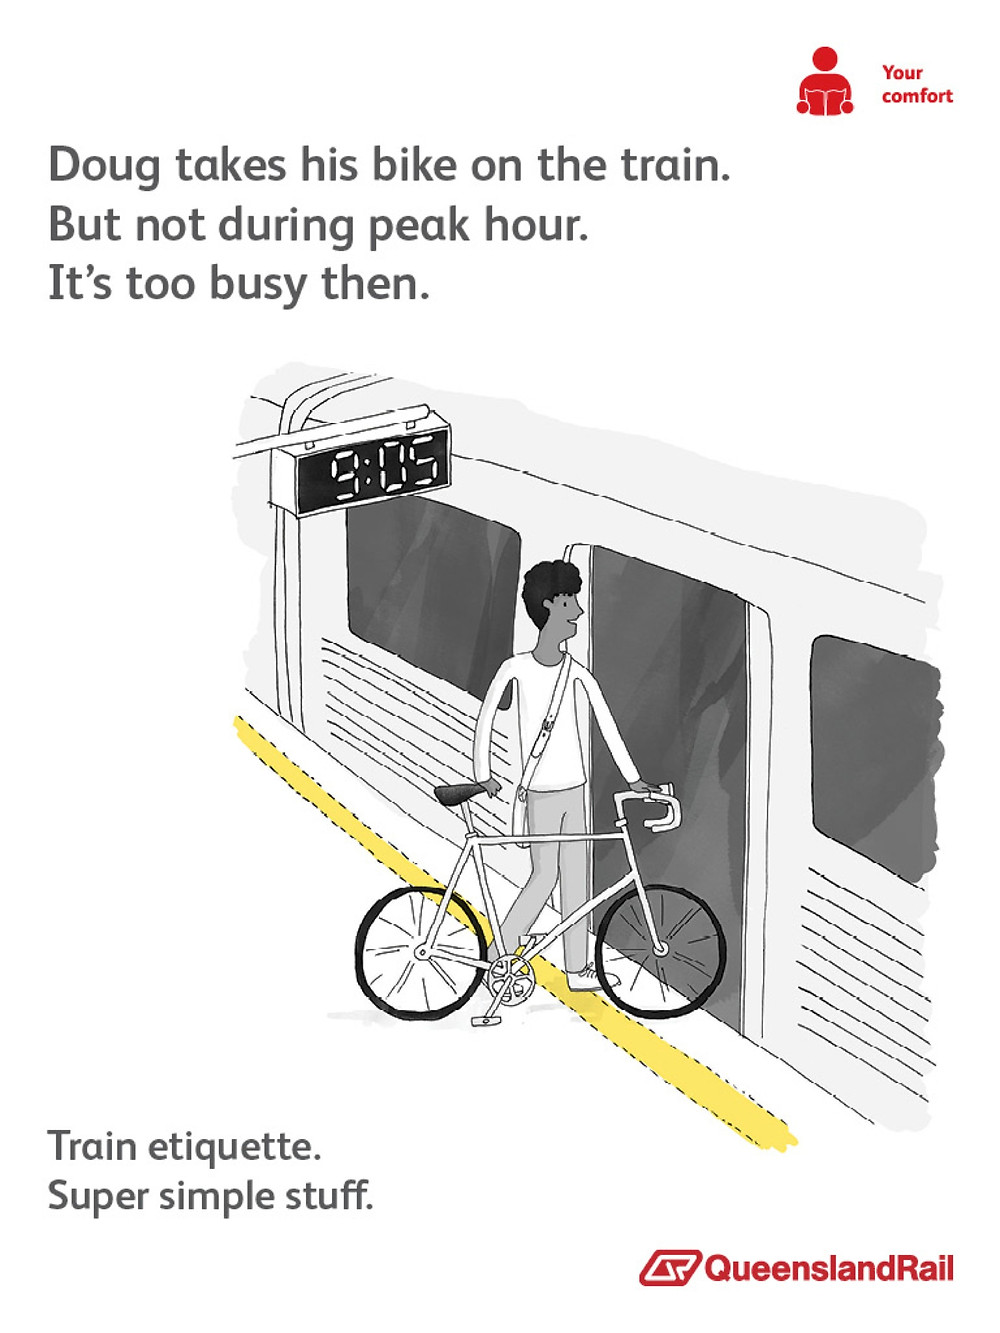 Train etiquette poster, doug only takes bike on the train during non peak hours